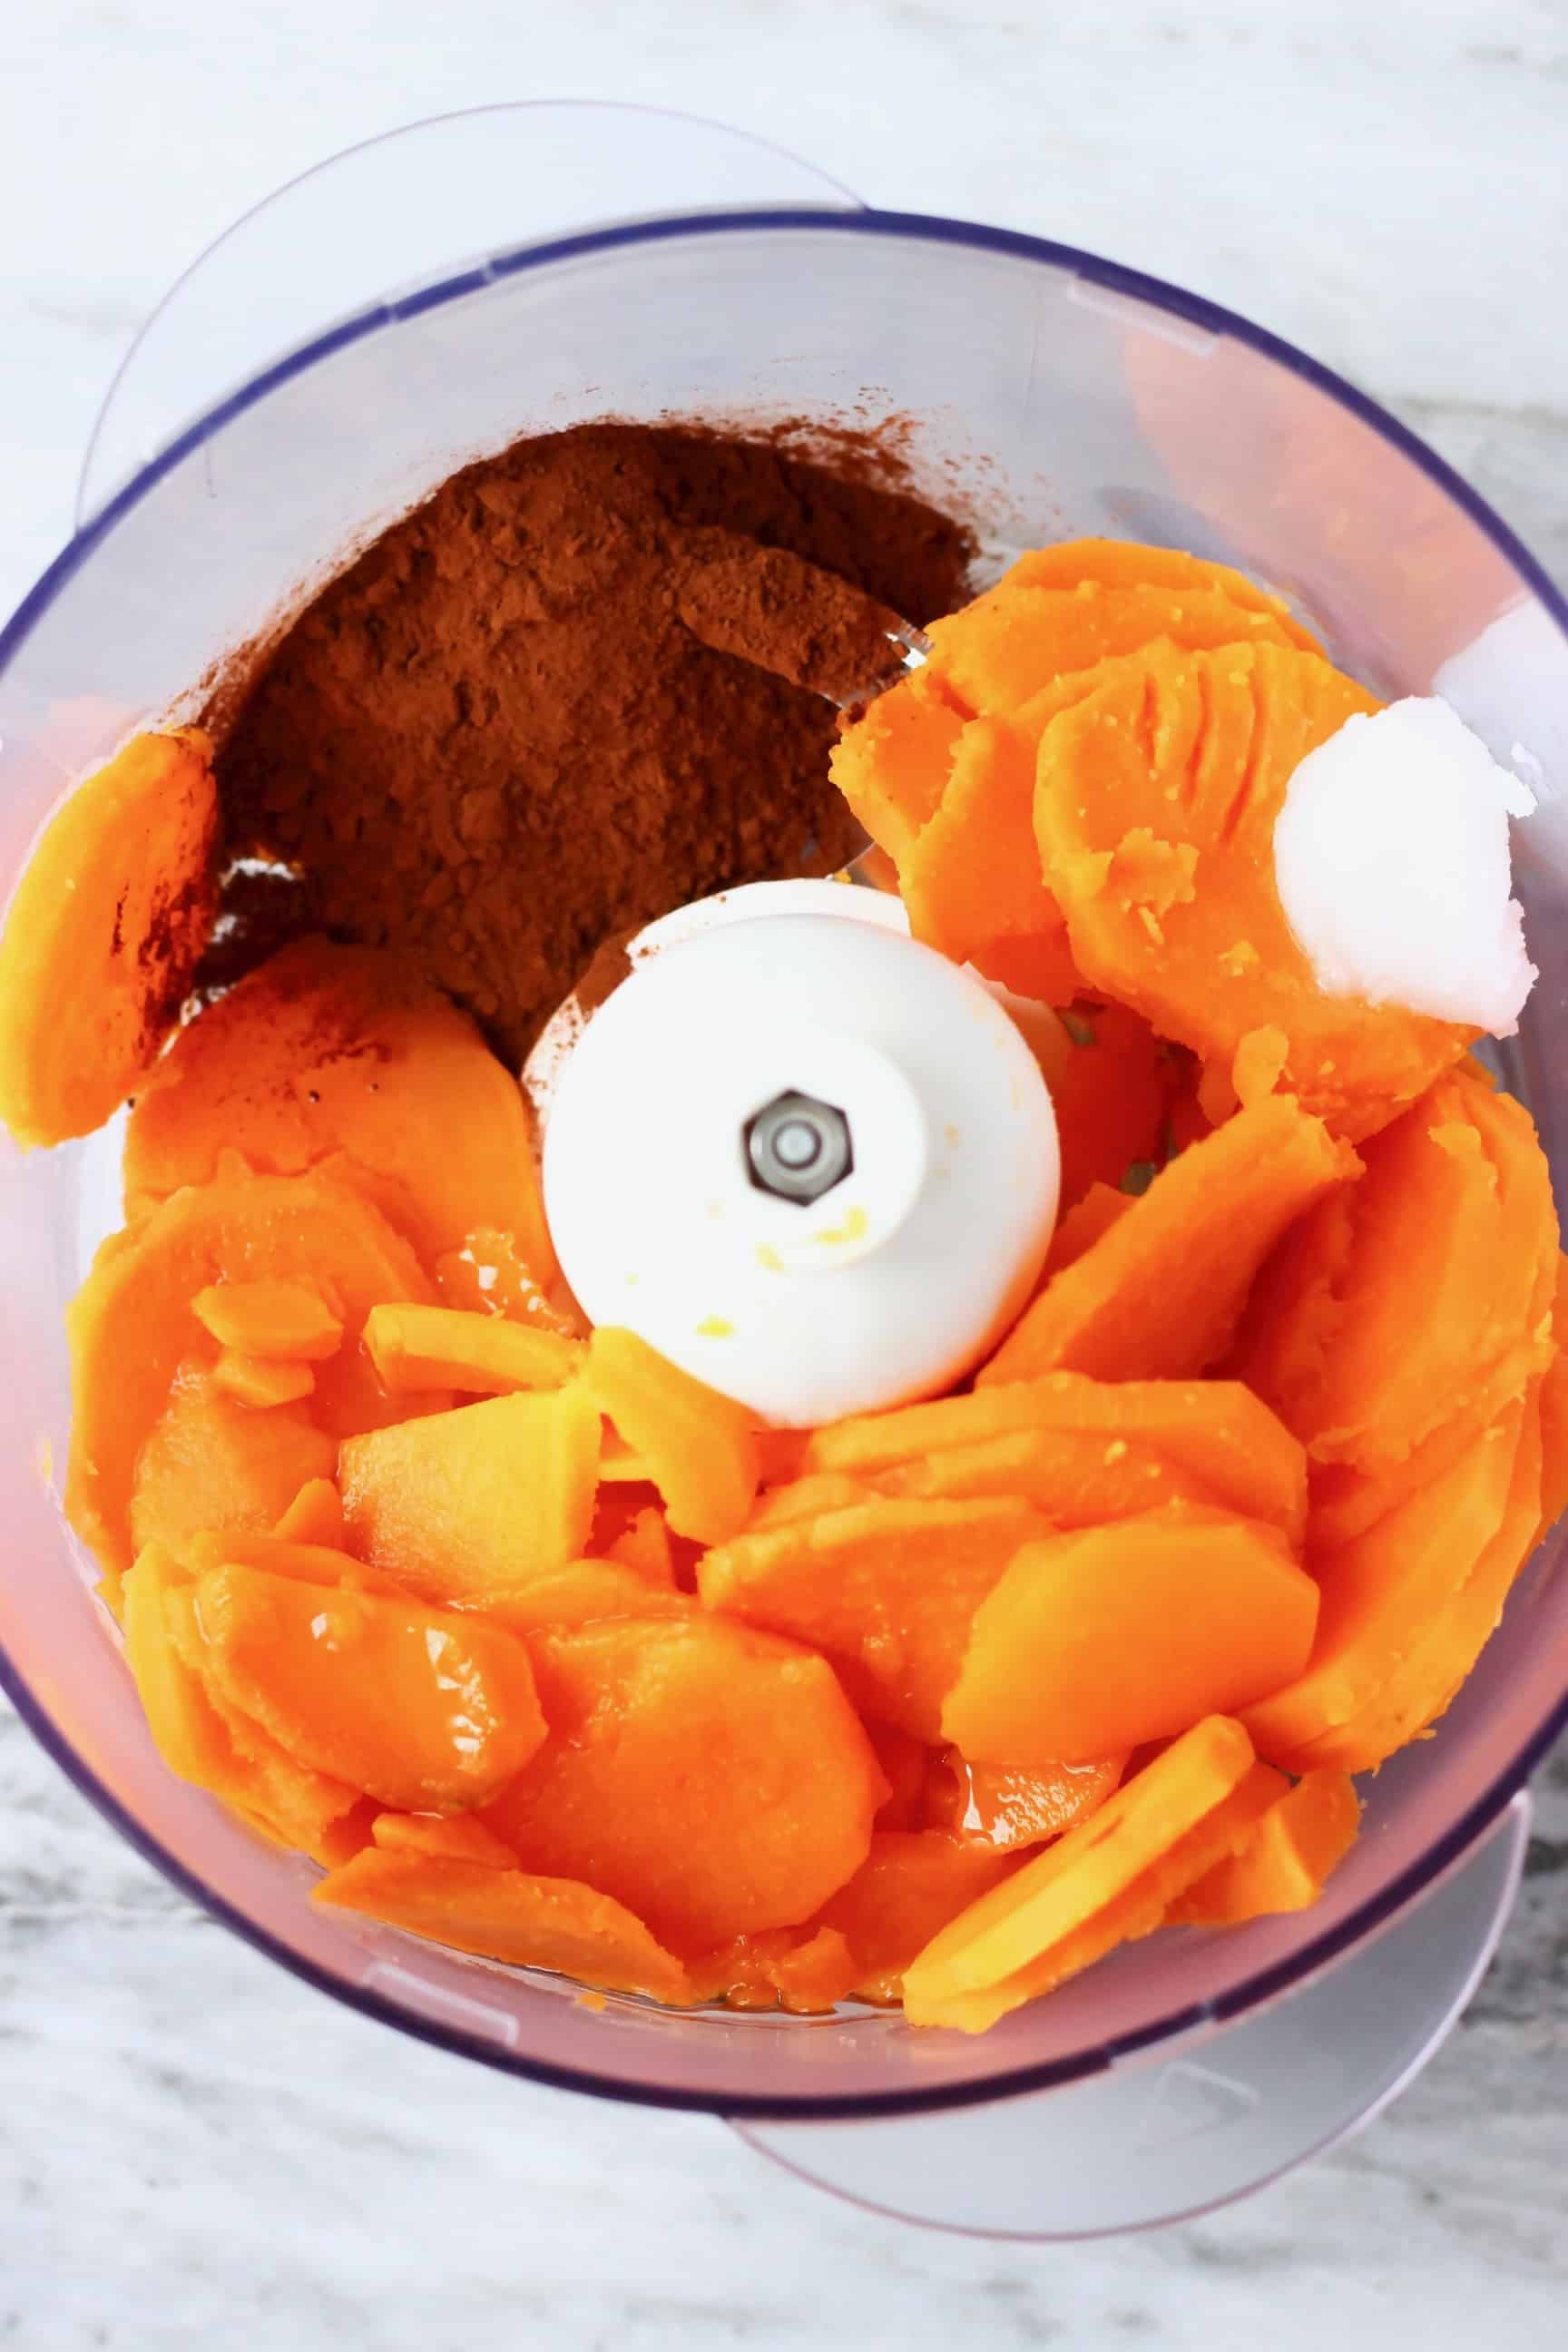 Cooked sweet potatoes, coconut oil and cocoa powder in a food processor